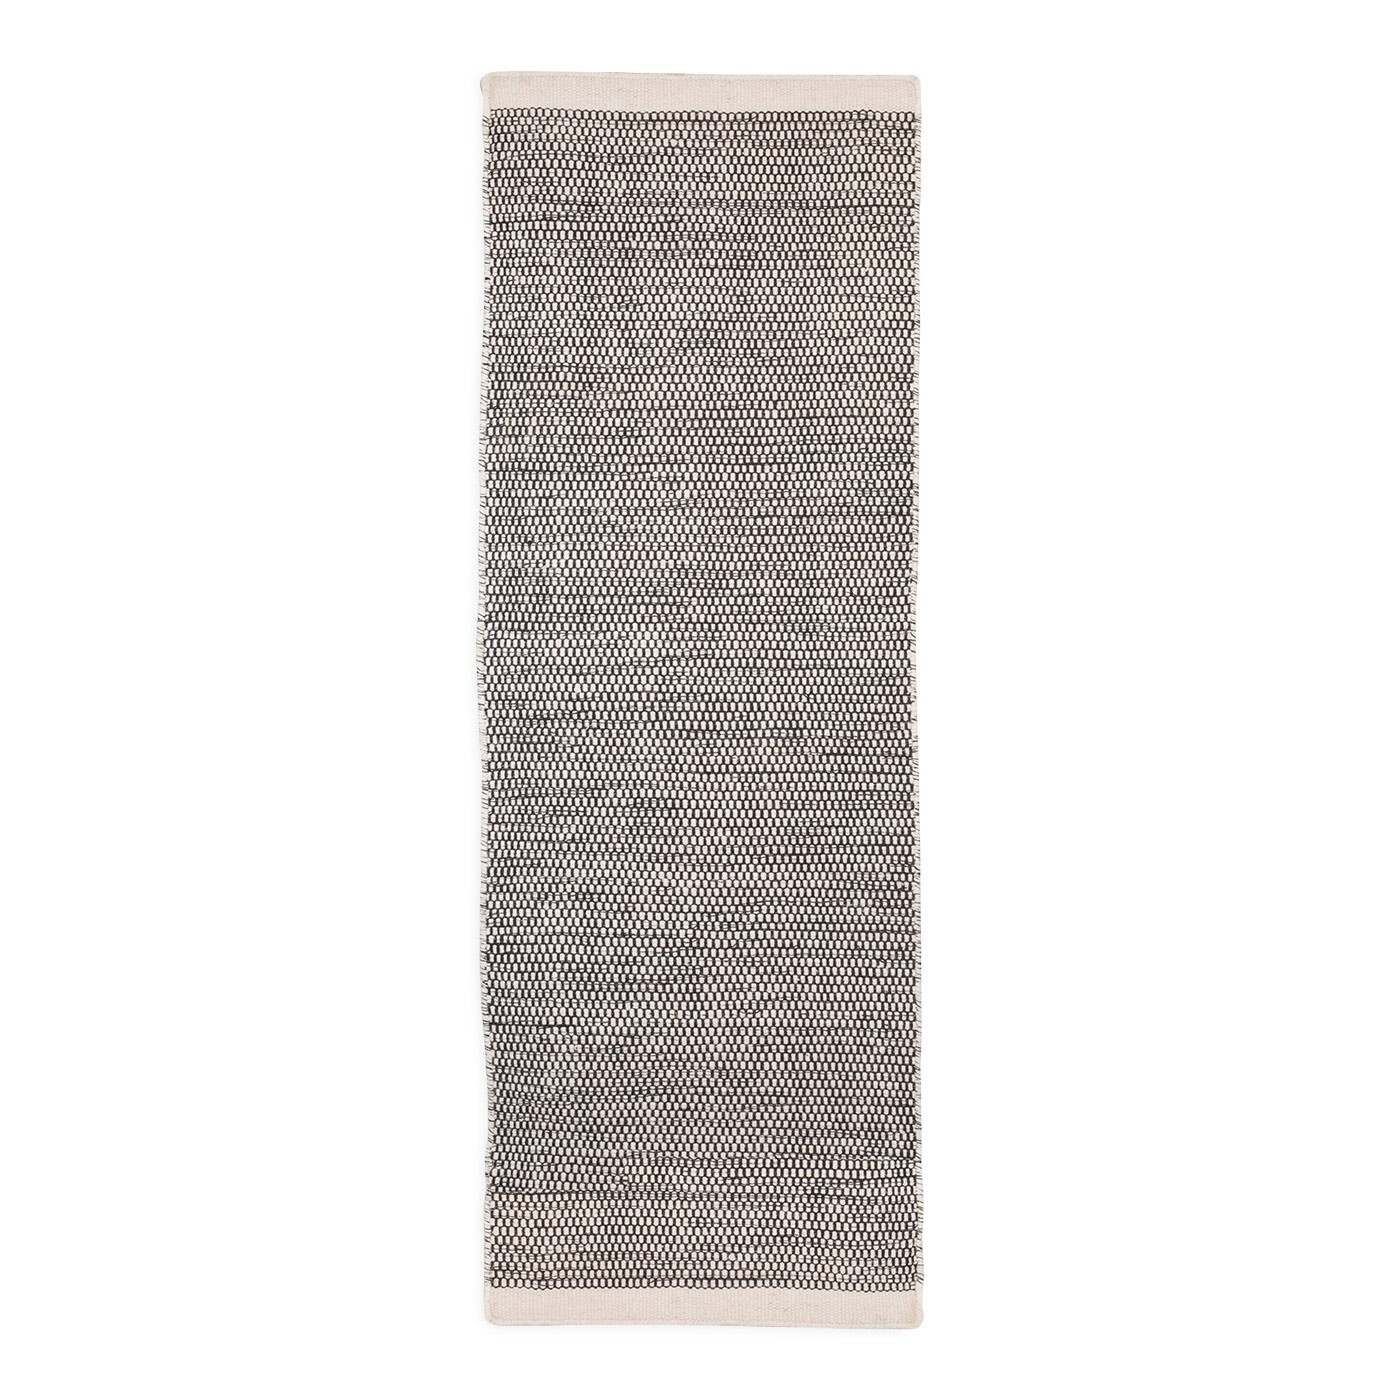 Asko Runner Rug Light Grey Natural Throughout Rug Runners Grey (View 1 of 20)